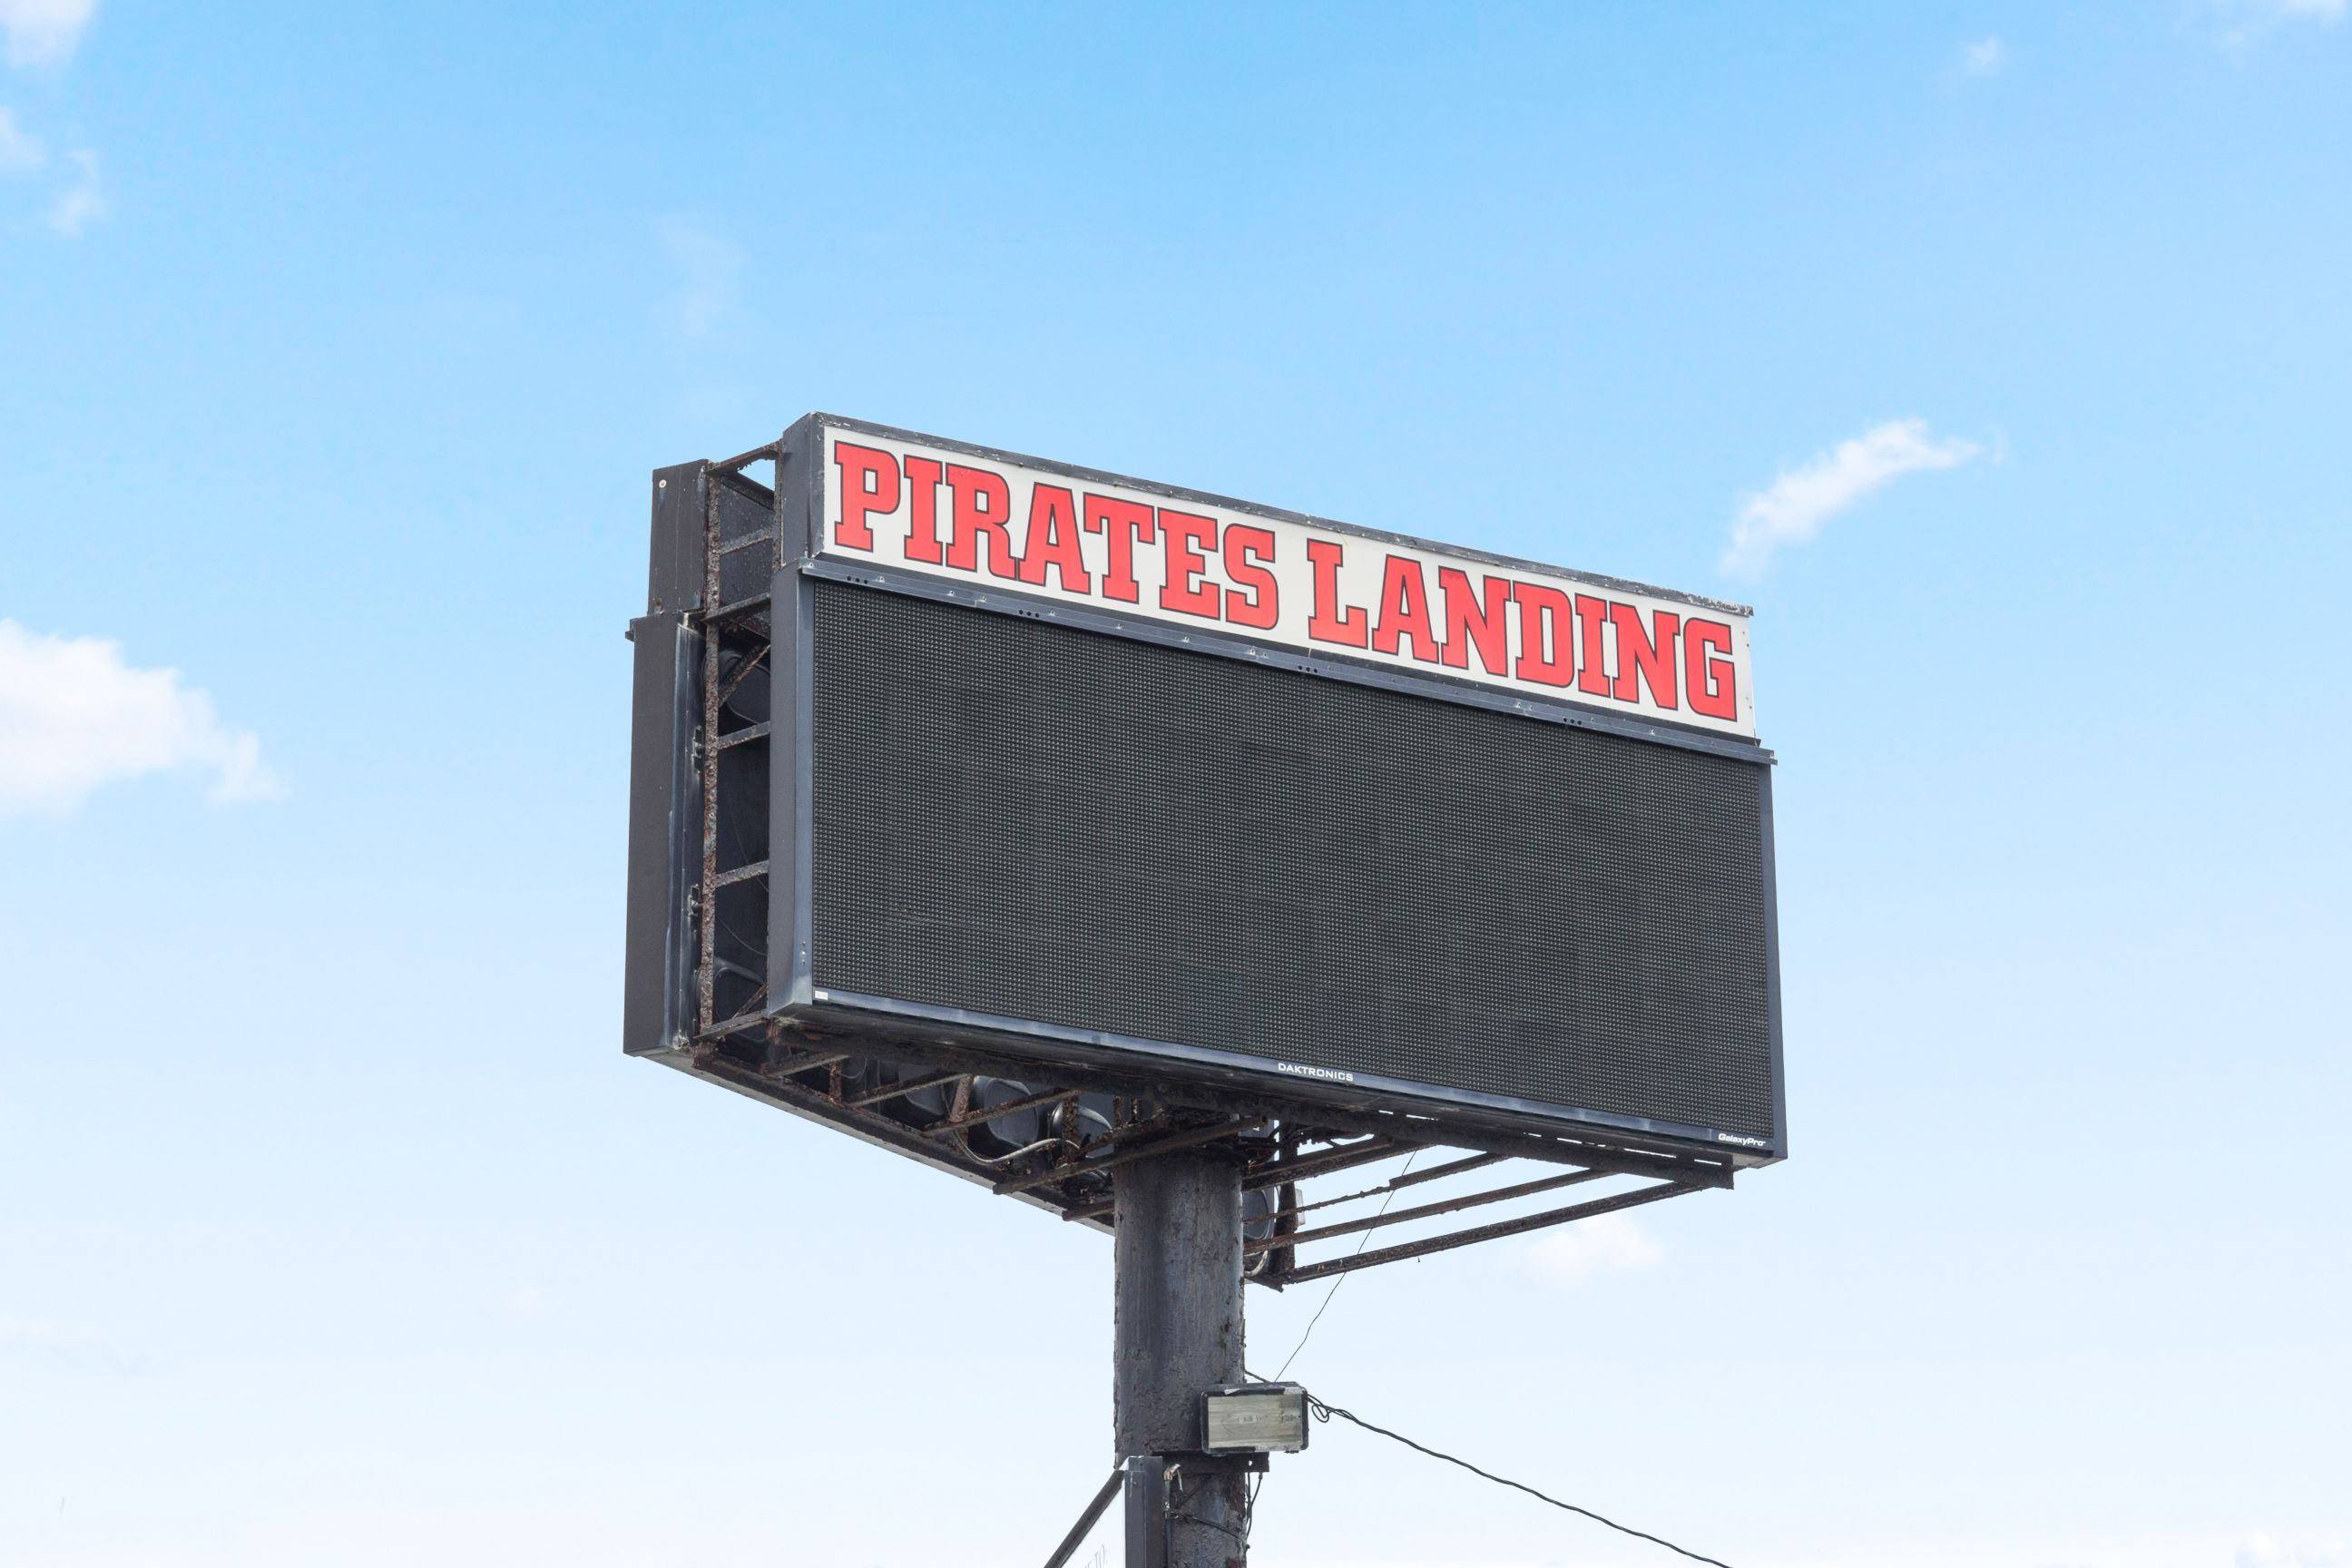 Pirates Landing billboard